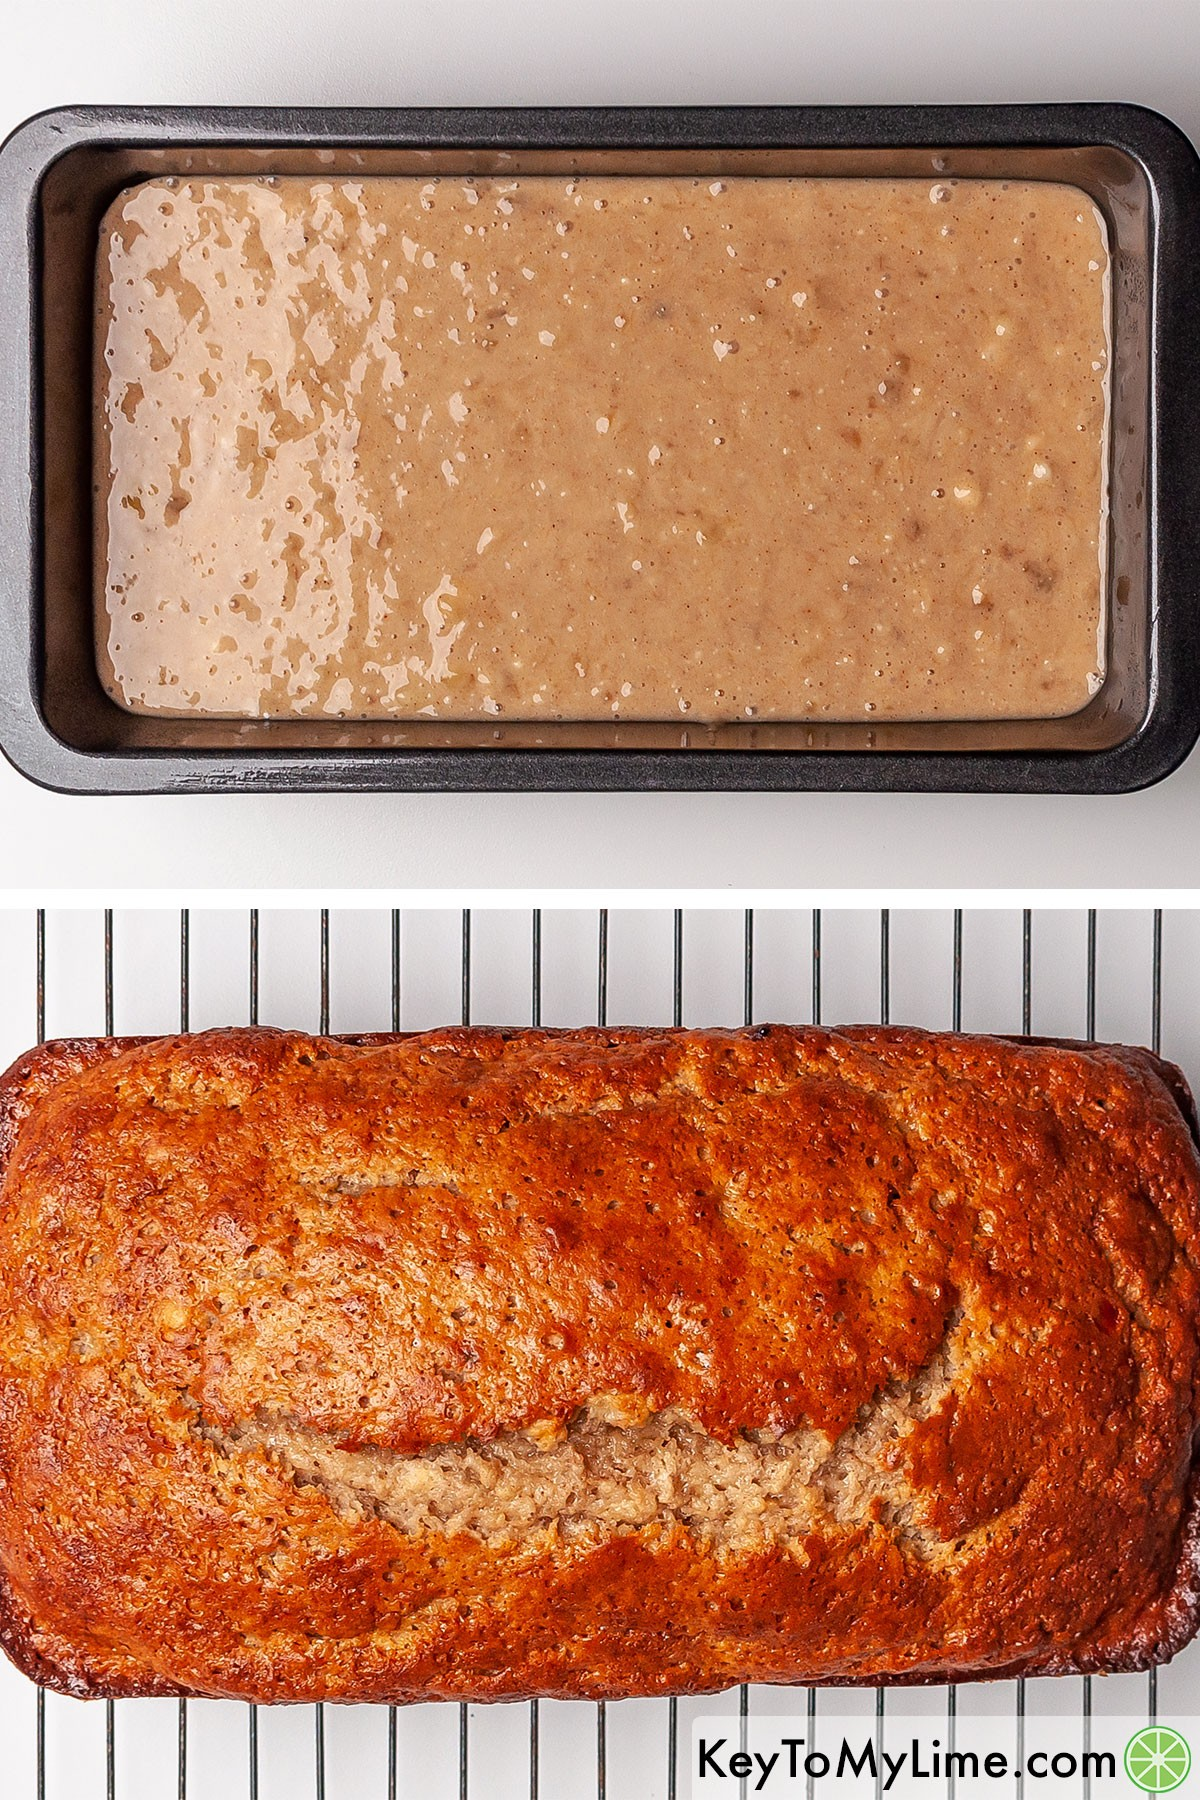 Banana bread before and after baking.